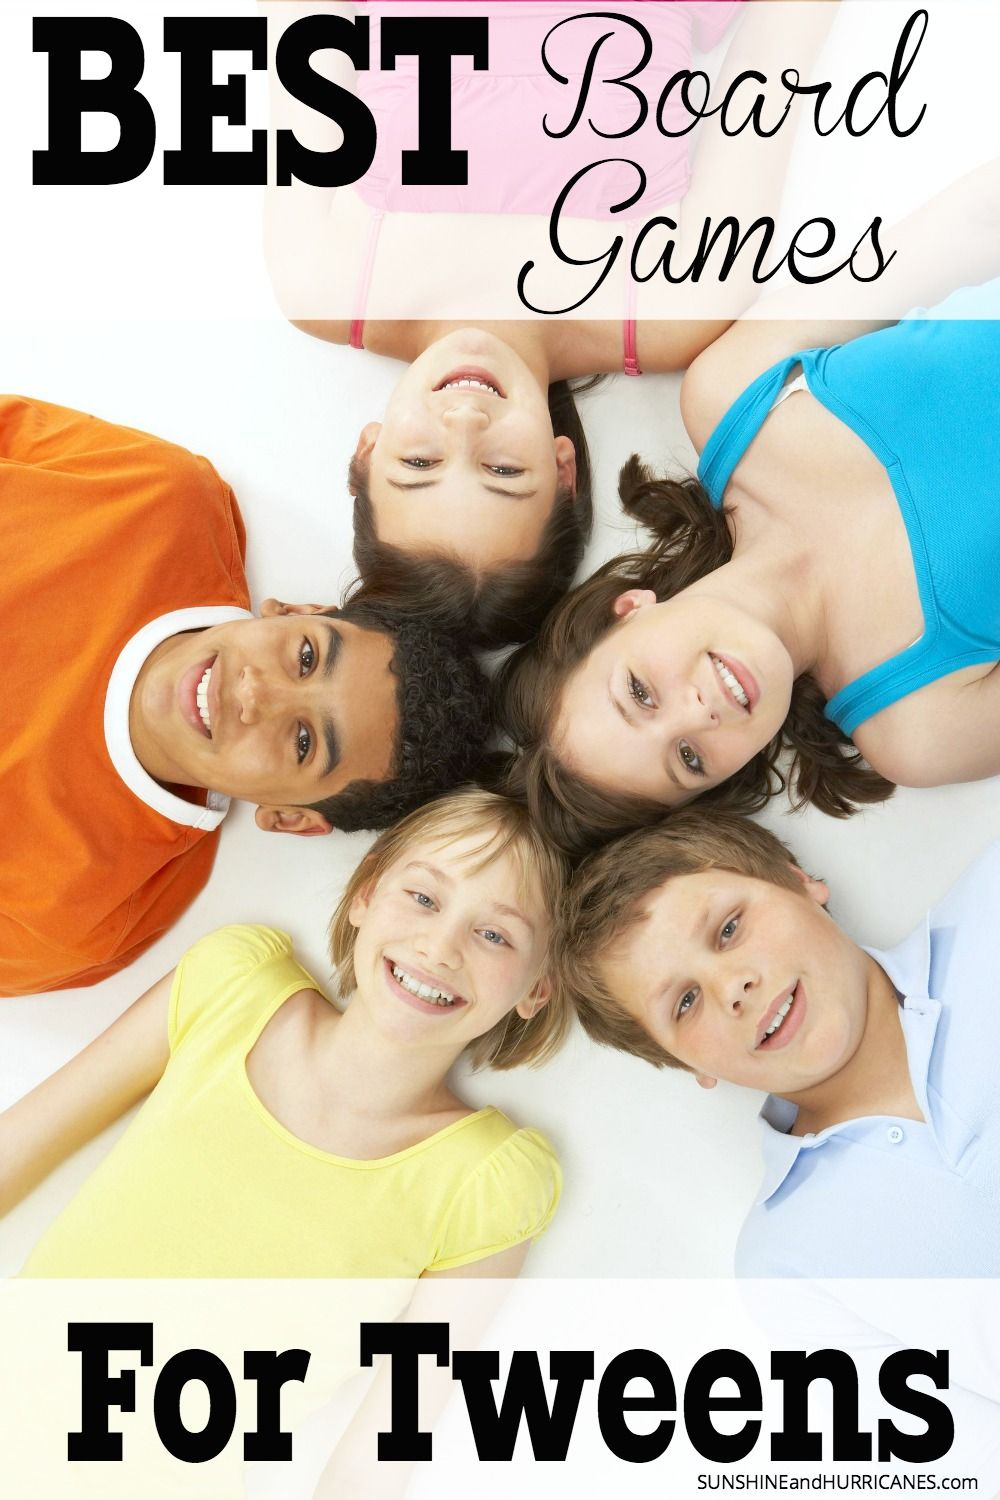 looking for a way to connect with your tween during this difficult phase in life family game nights can be a perfect low pressure way to have fun and